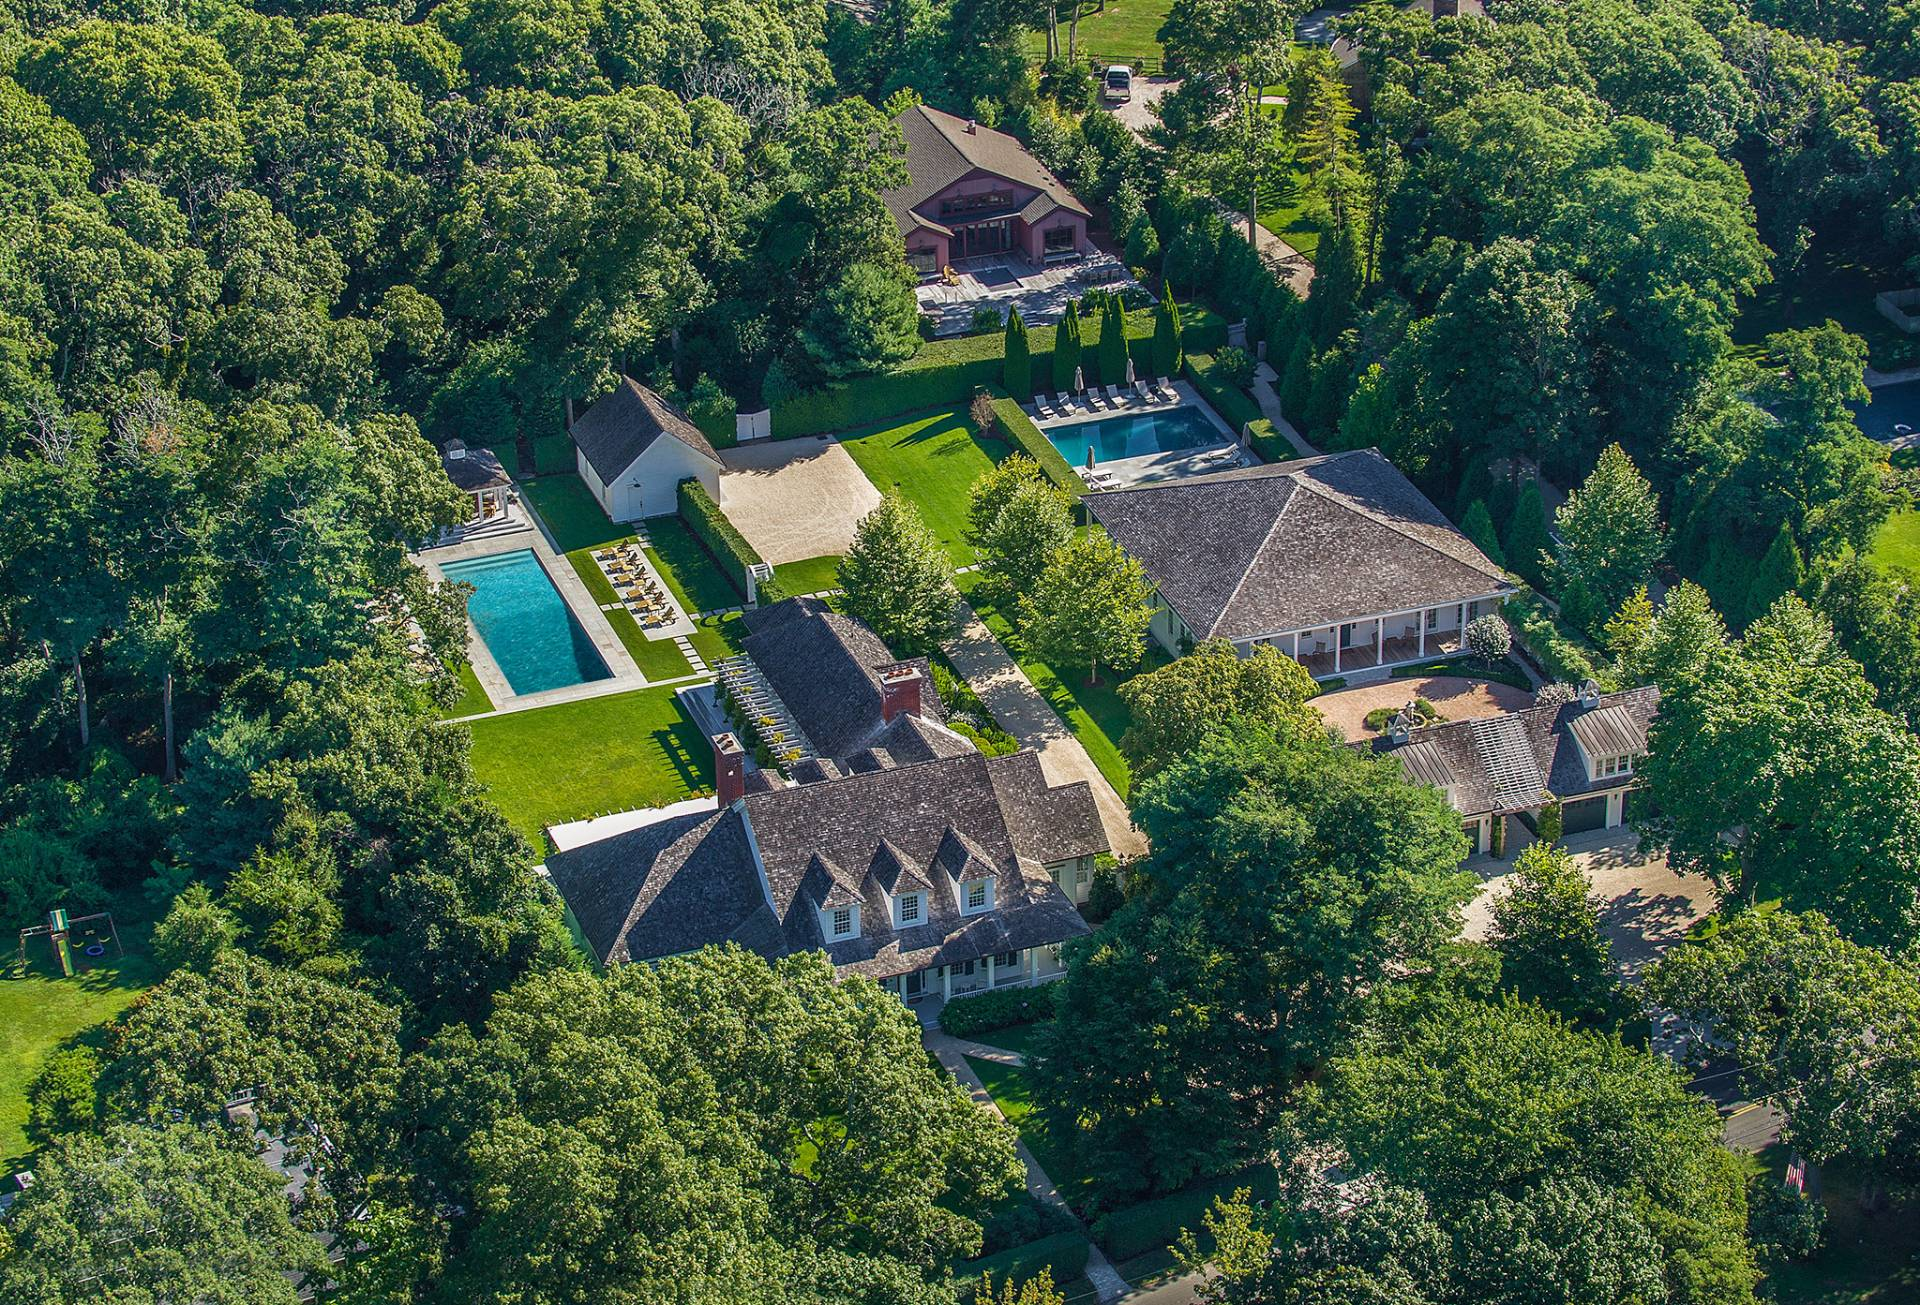 Casa Unifamiliar por un Venta en Very South In Wainscott Undisclosed Address, Wainscott, Nueva York